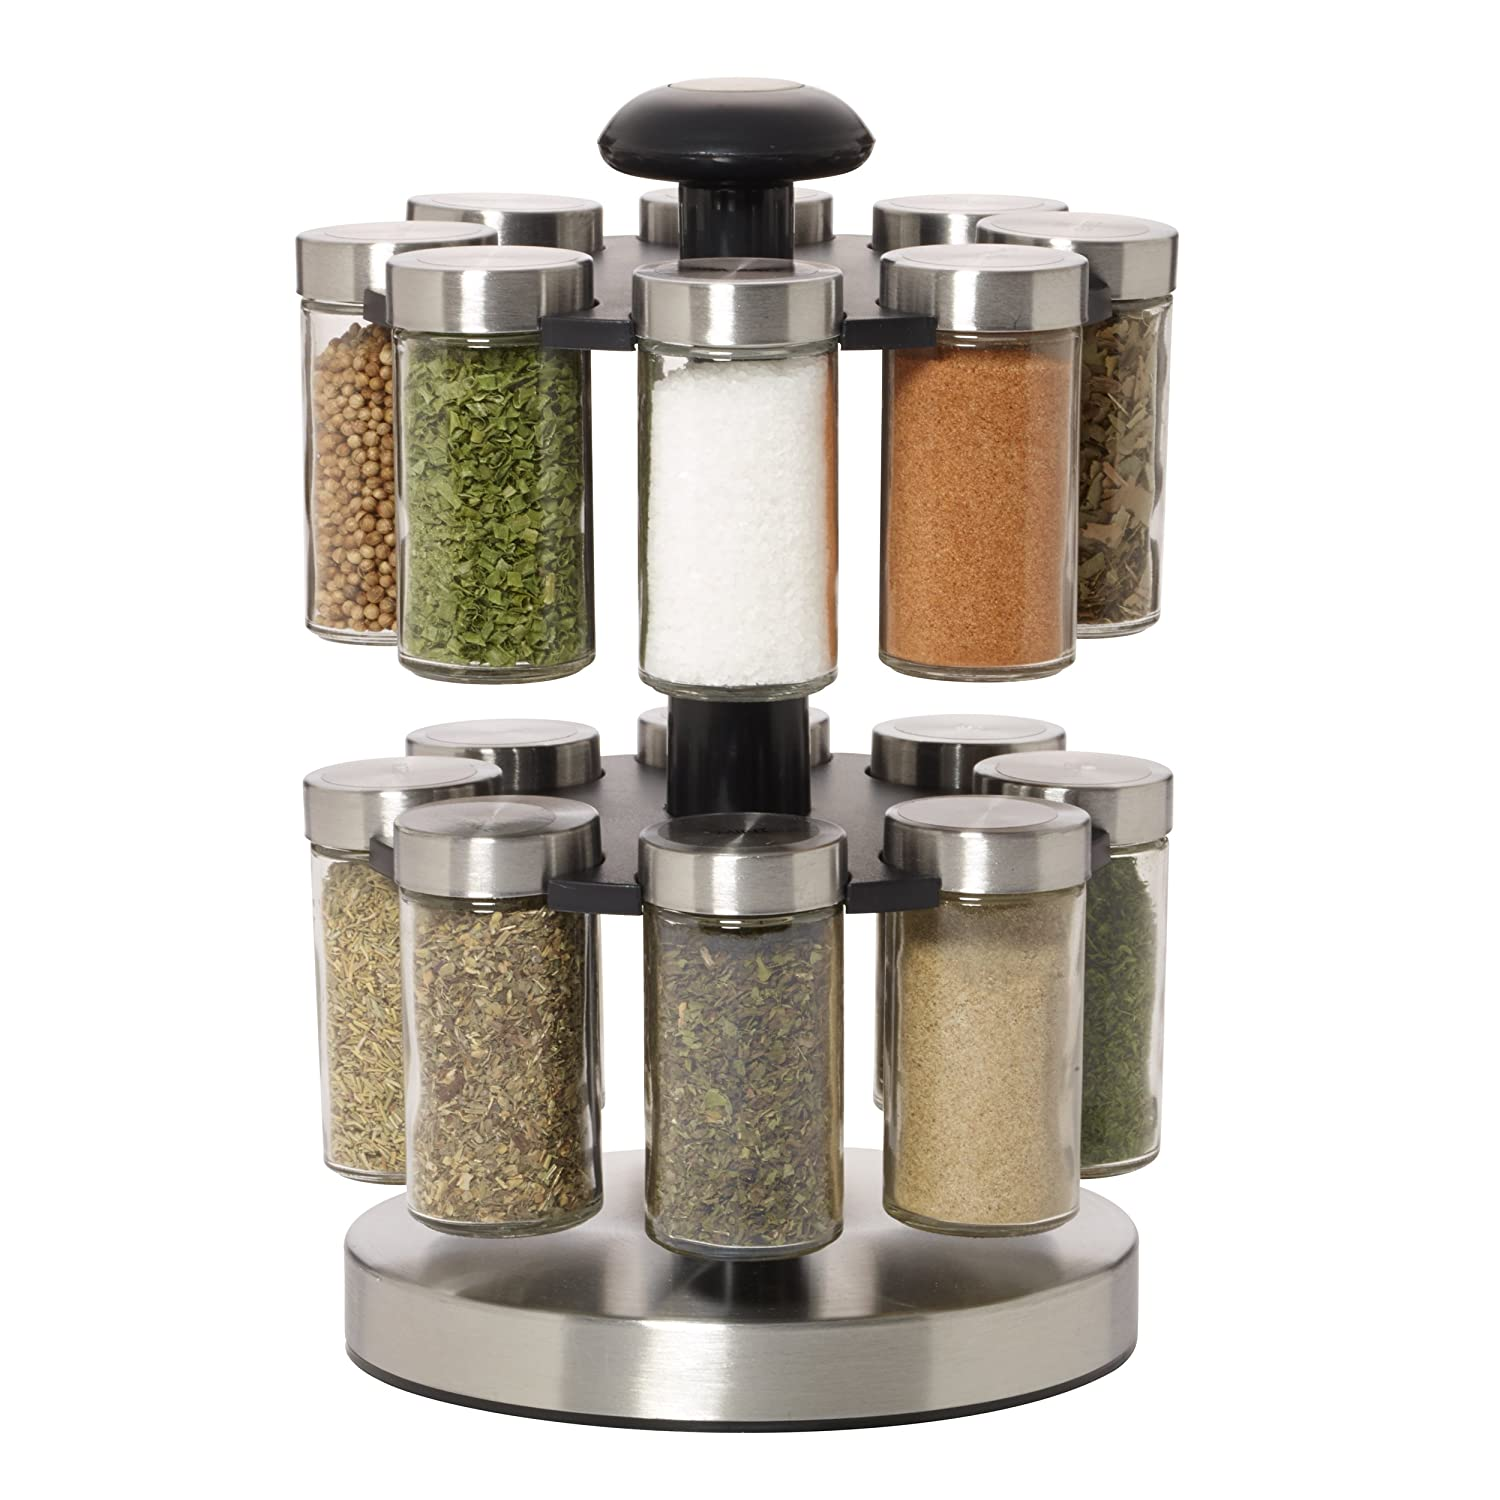 Beau Amazon.com: Kamenstein Lexington 16 Jar Revolving Spice Rack With Free Spice  Refills For 5 Years: Kitchen U0026 Dining